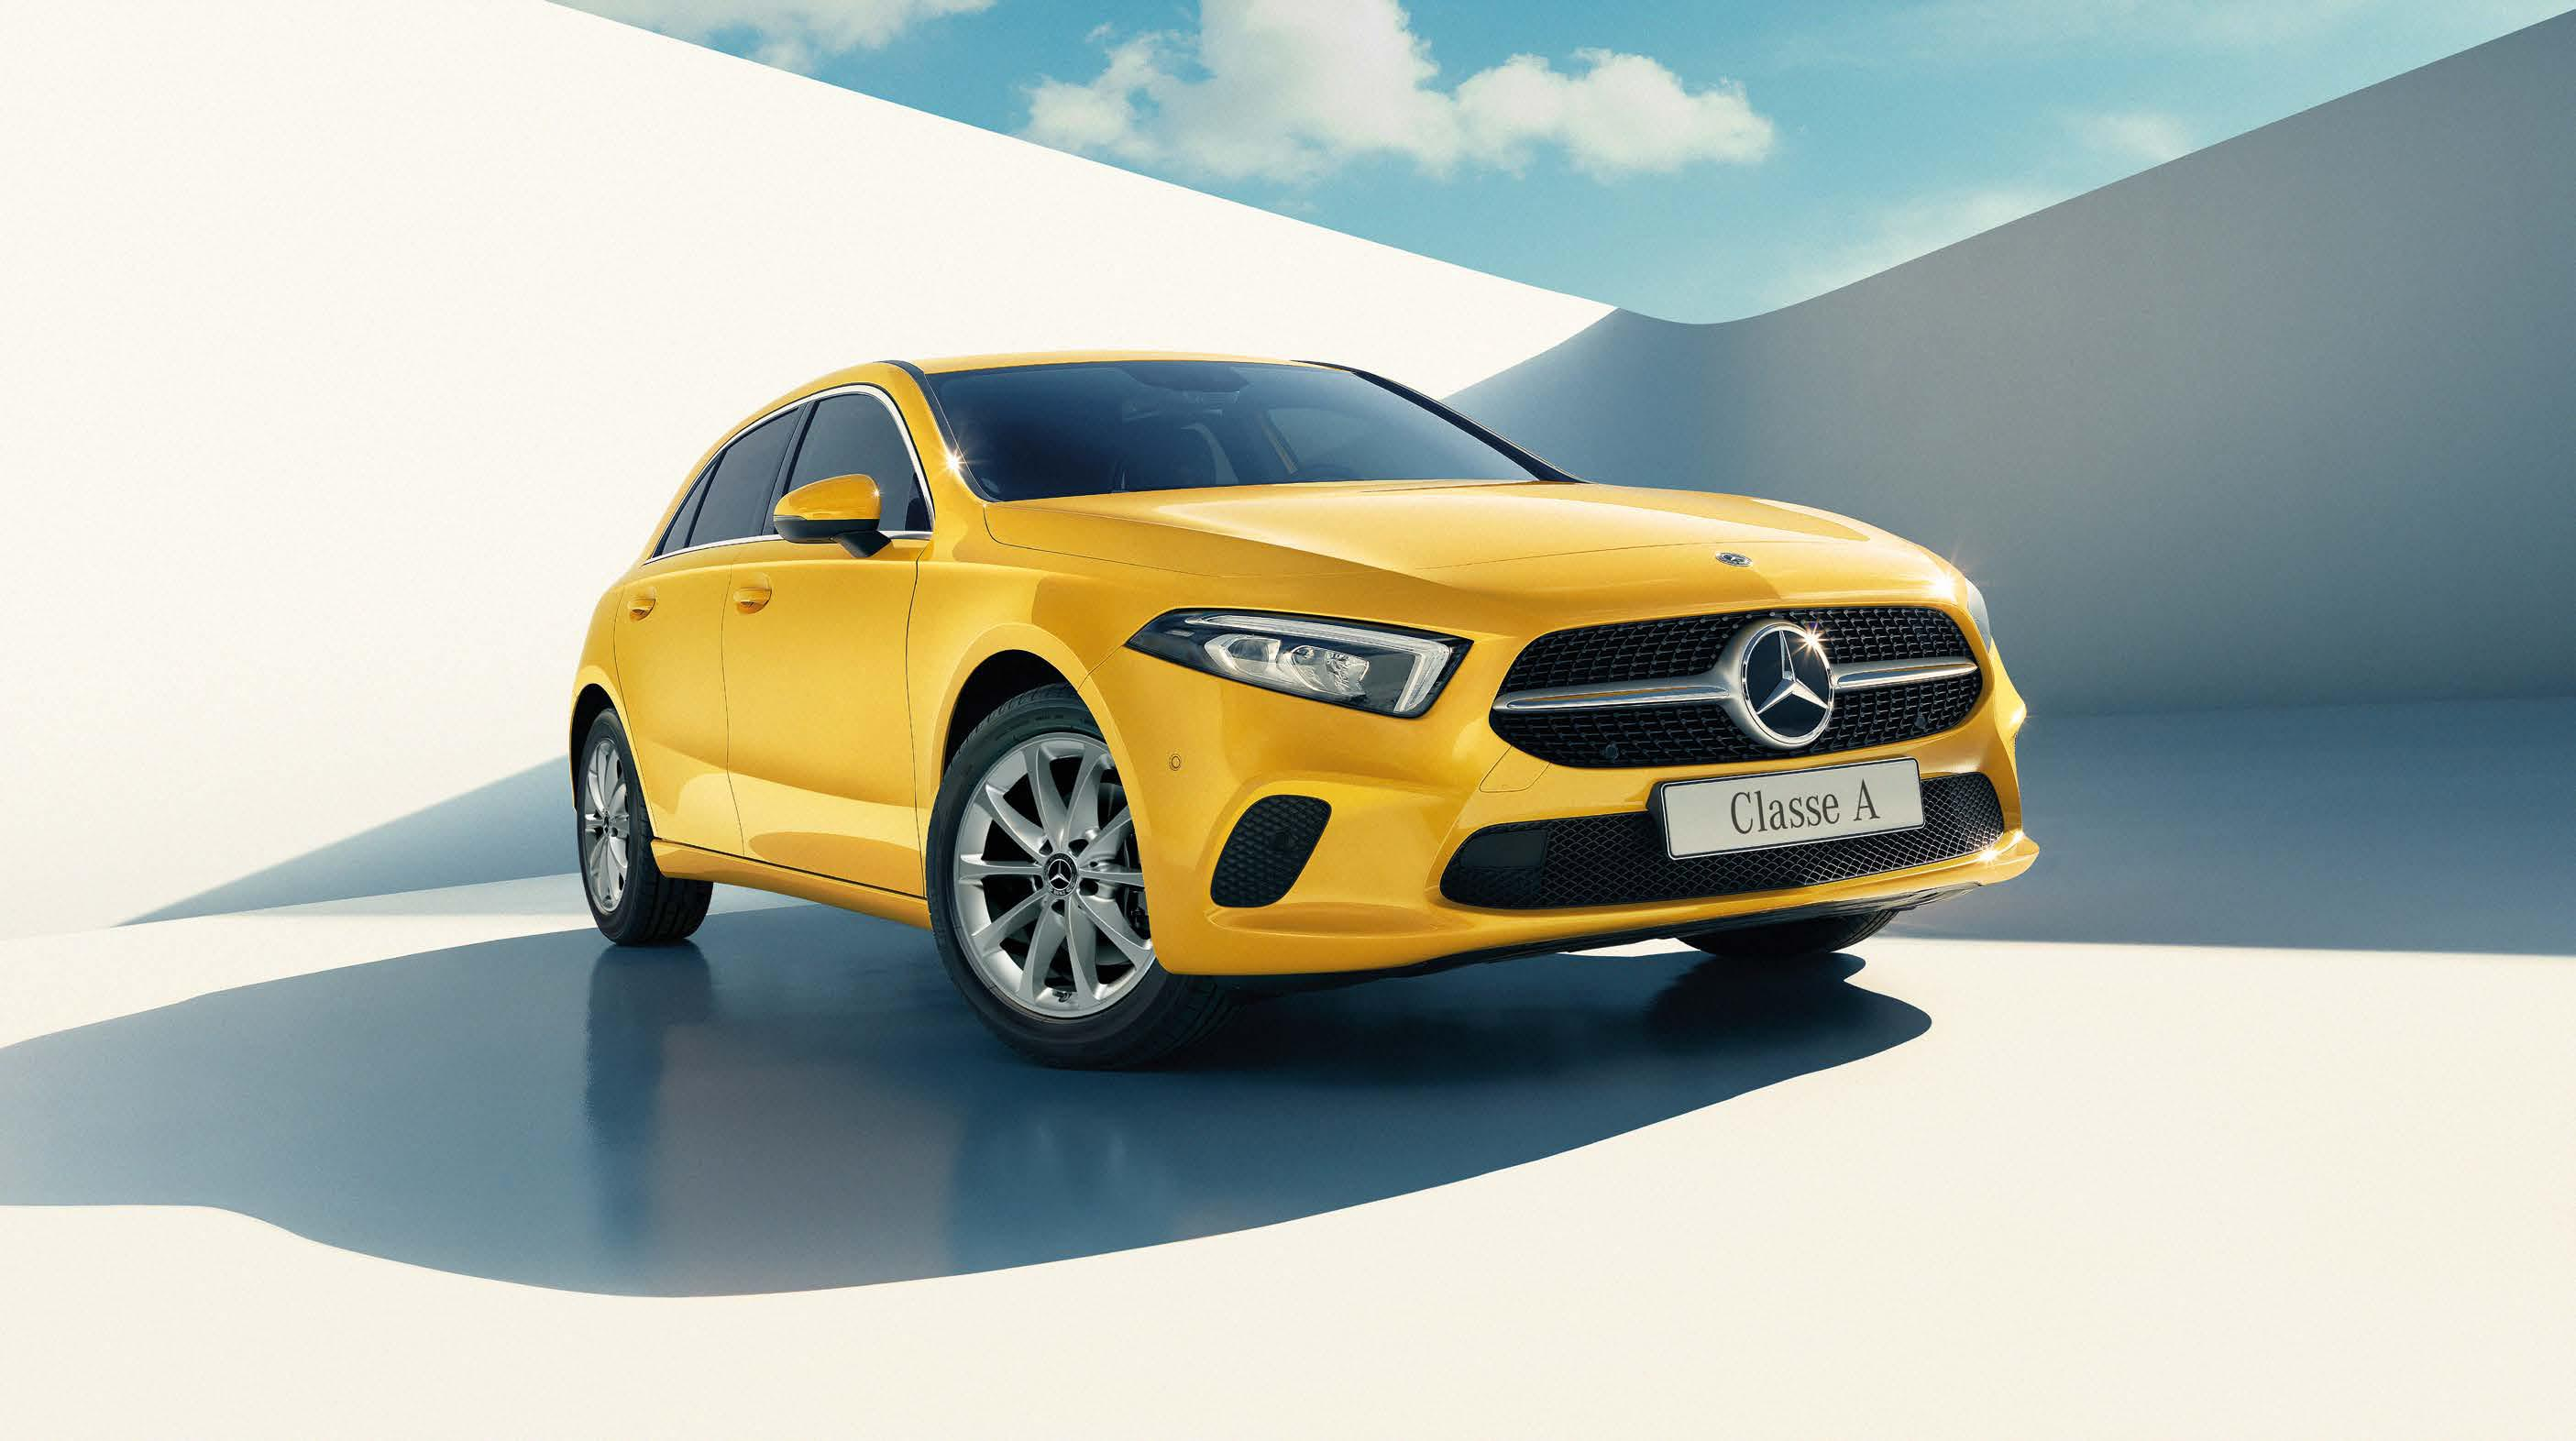 Classe A 180d Automatic SPORT EXTRA.